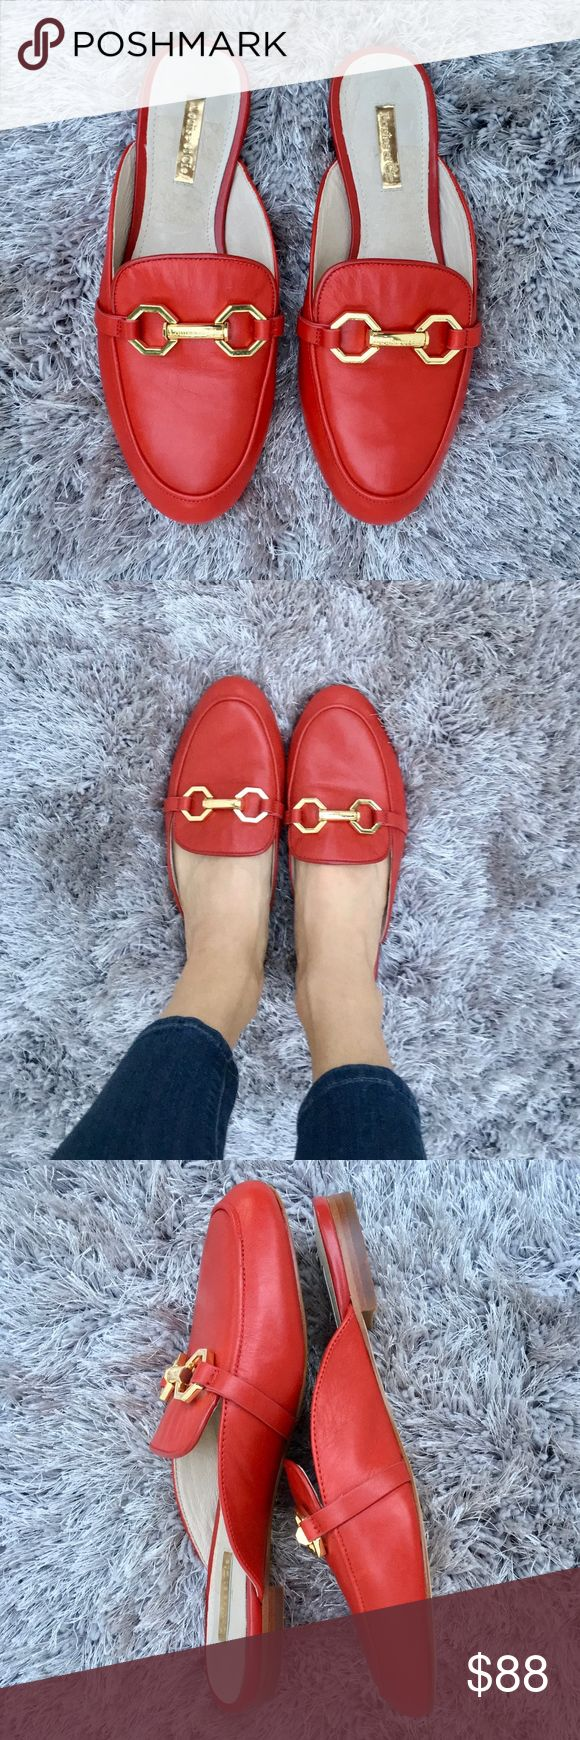 Louise et Cie Finay Loafer Mule 🆕 Lovely Red Leather #mules by Louise et Cie (Vince Camuto) Cushioned footbed Gold tone hardware Genuine leather True to size Brand new, without tags Vince Camuto Shoes Mules & Clogs